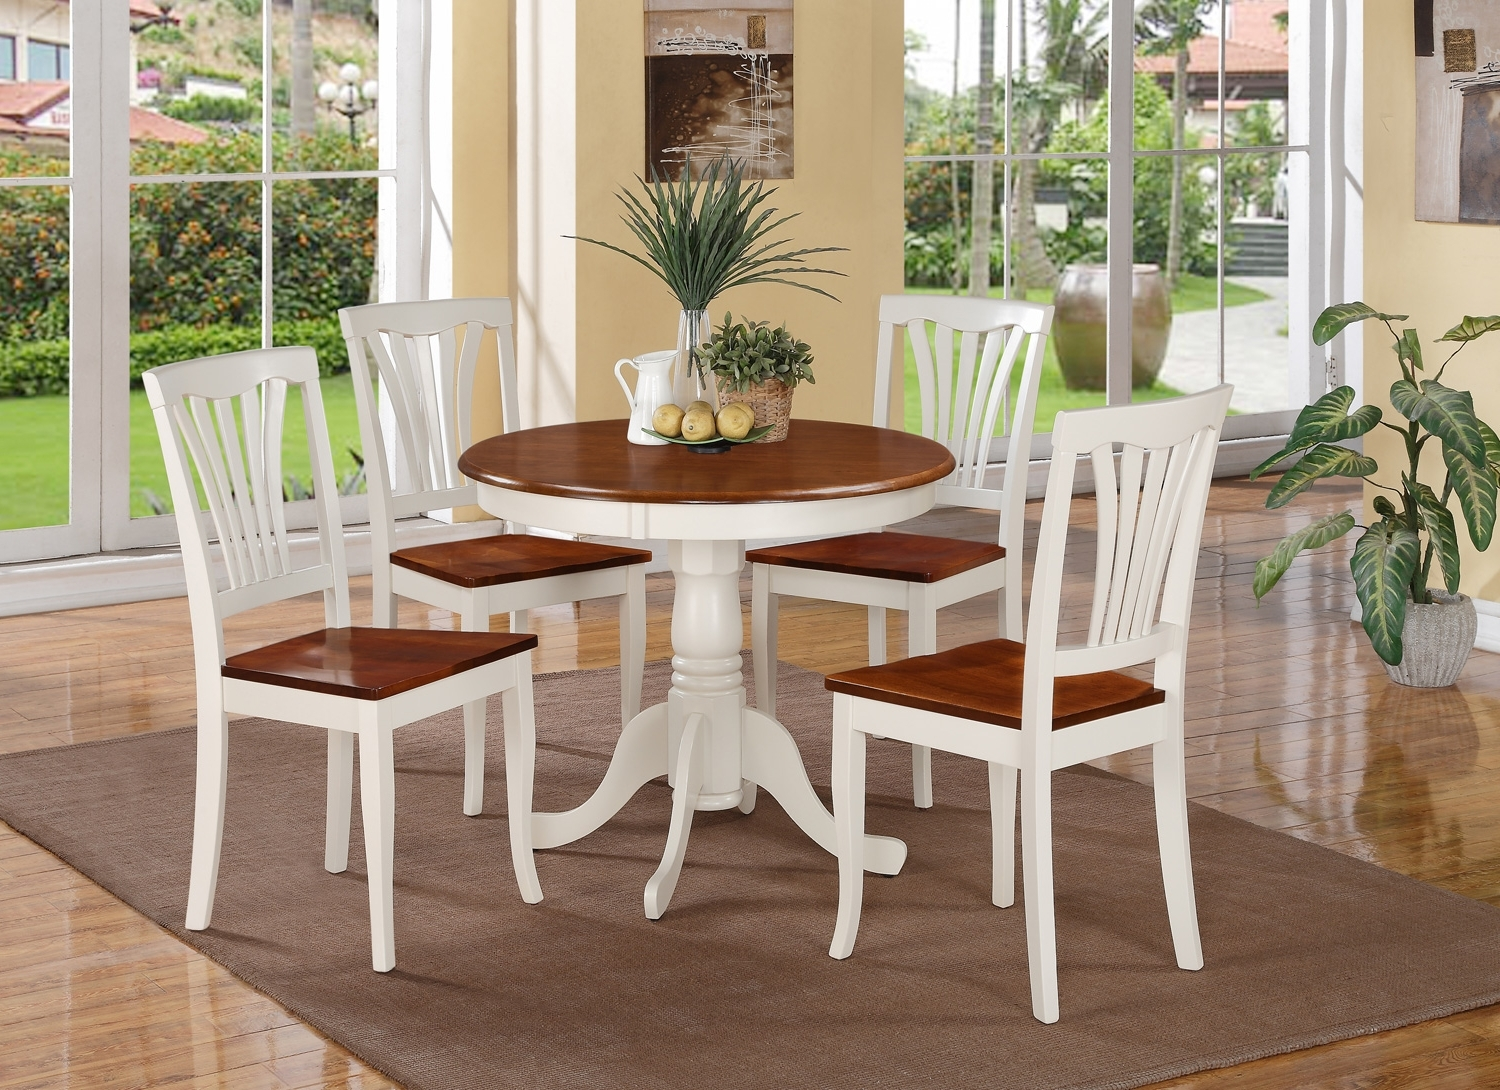 Most Up To Date Circular Dining Tables For 4 In Dining Tables (View 17 of 25)